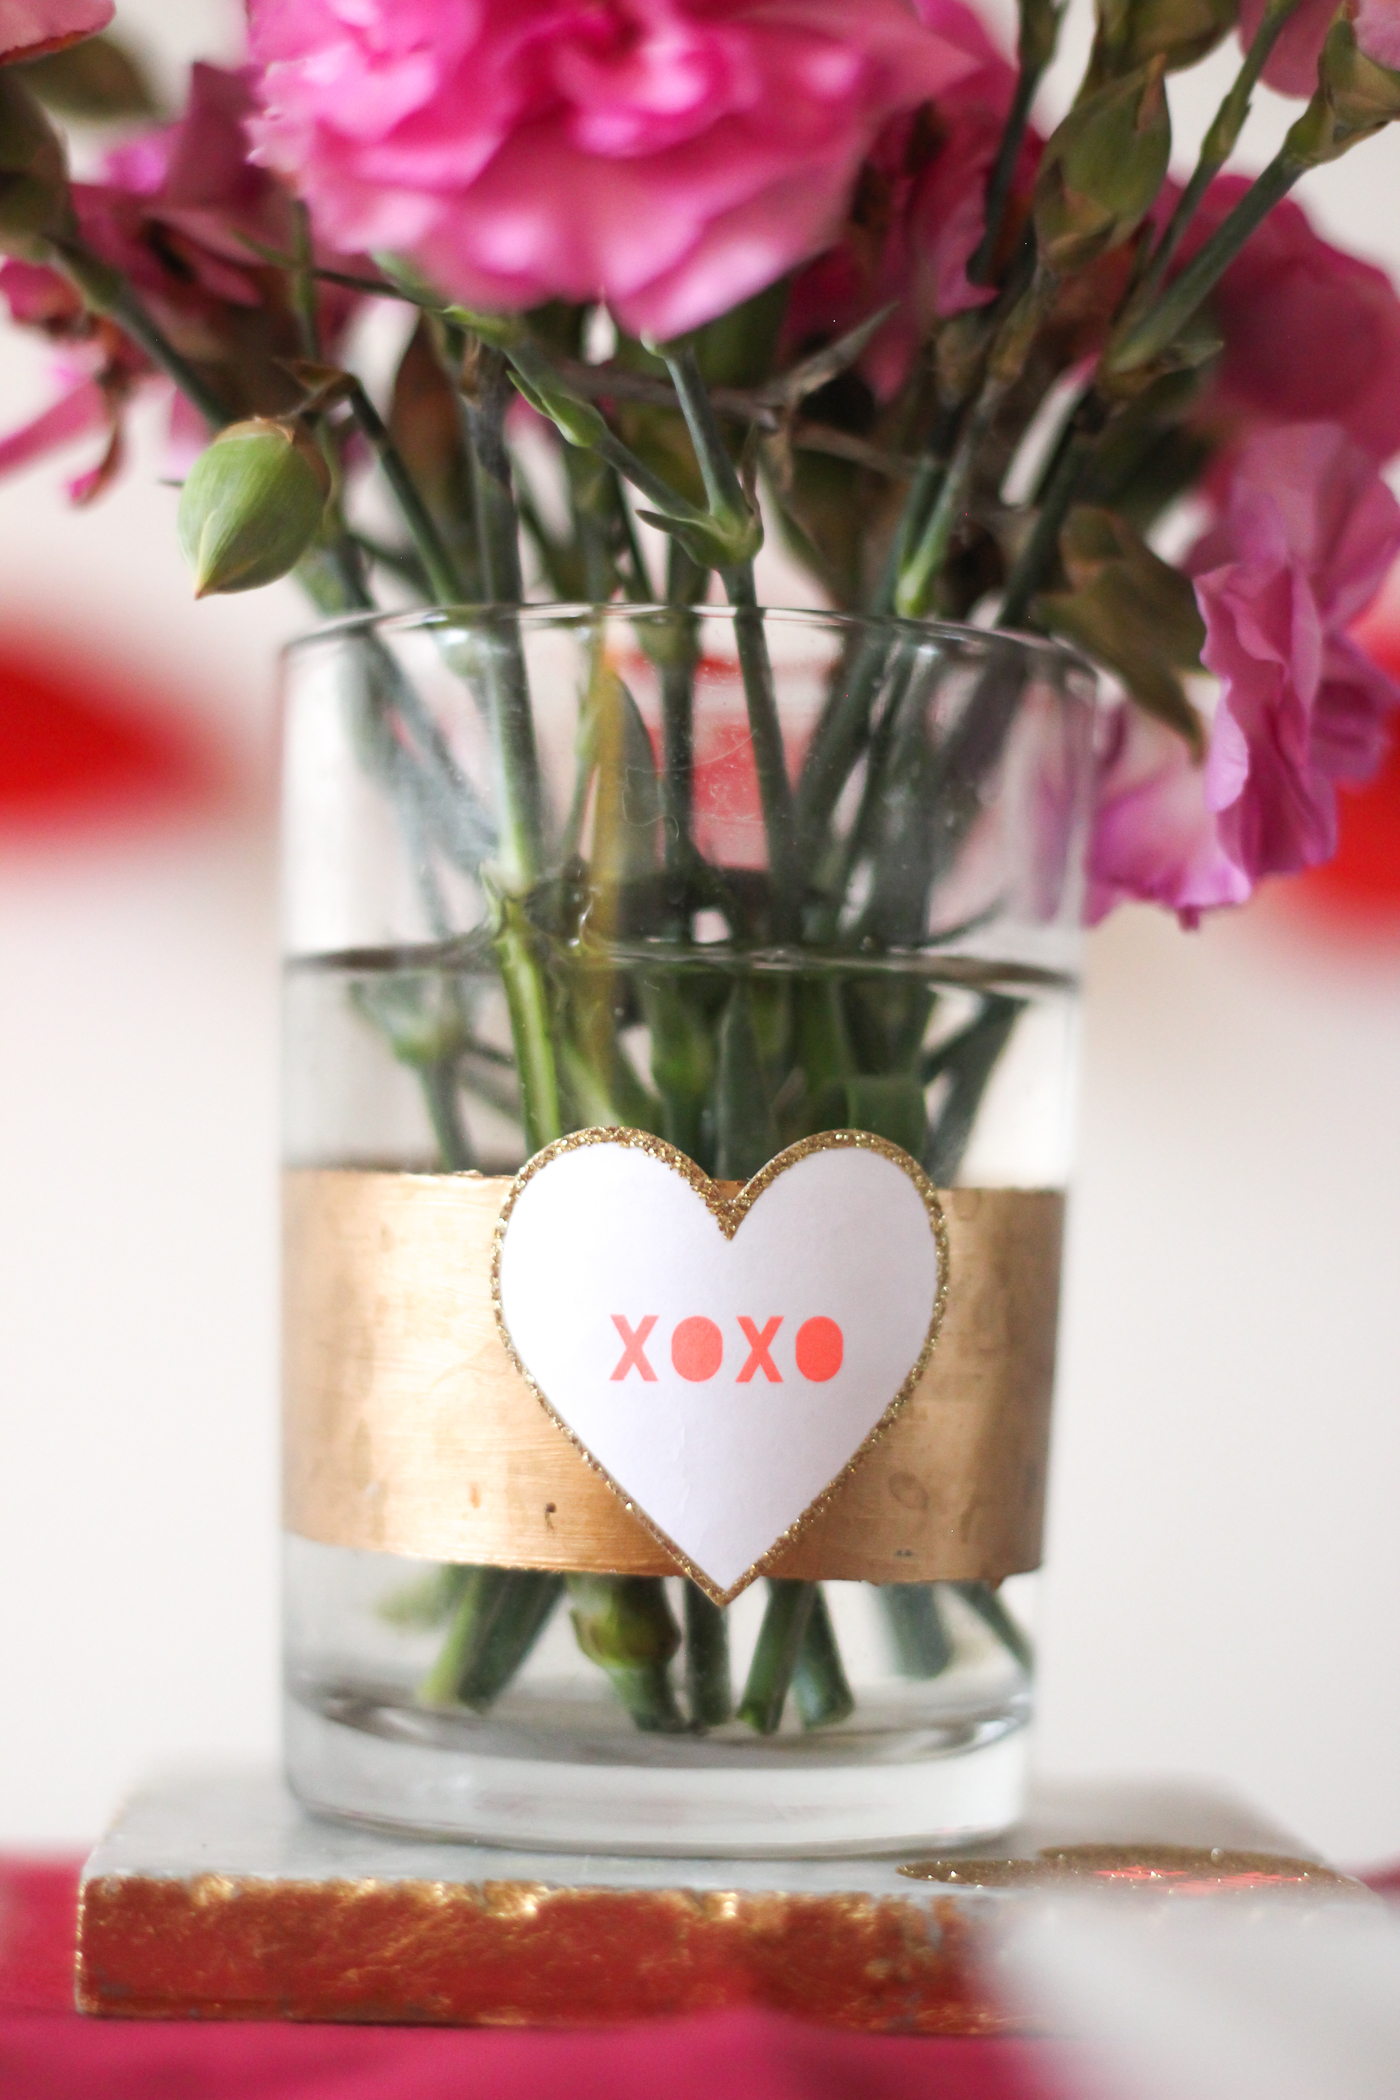 I used an old vase that I painted a gold strip on and then added some Valentine's day stickers. The flowers from Trader Joes we had leftover from last week. Still going strong! Love when that happens.